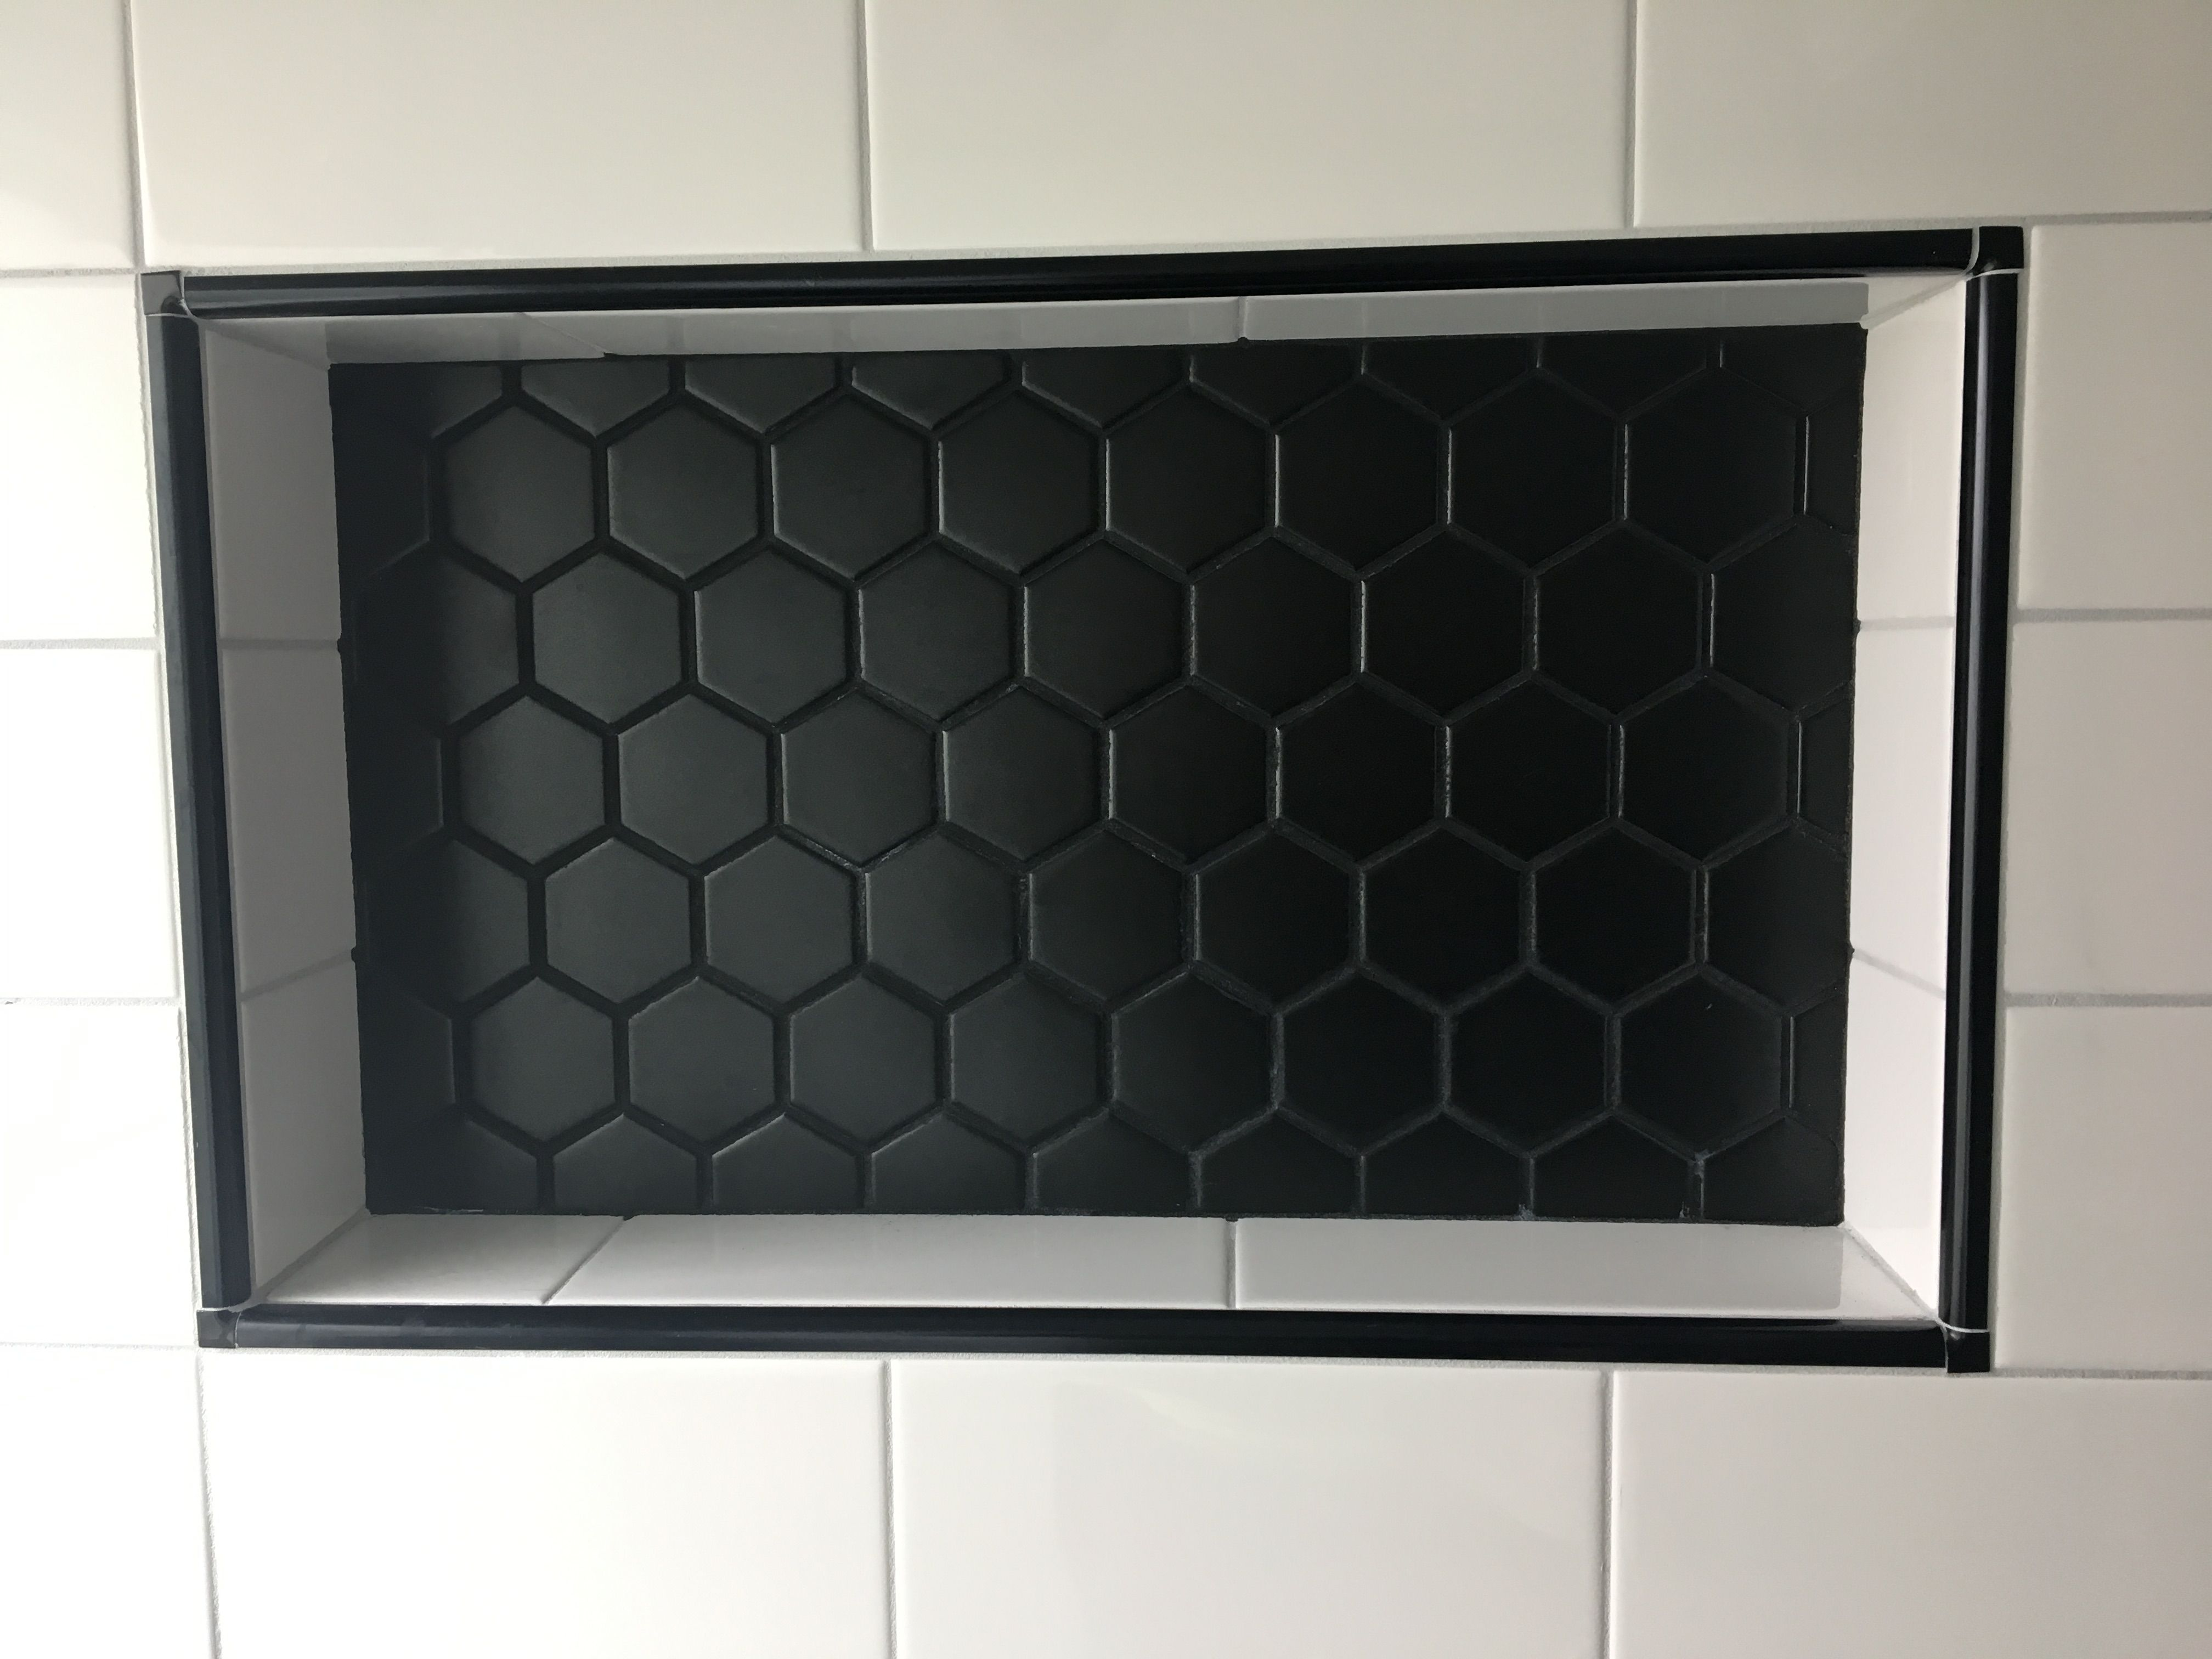 New Shower Niche With 2 Black Matte Hex Tiles And 4 X8 White Subway Tiles Edged With Black Schluter Trim Shower Niche Shower Tile Designs Schluter Tile Edge